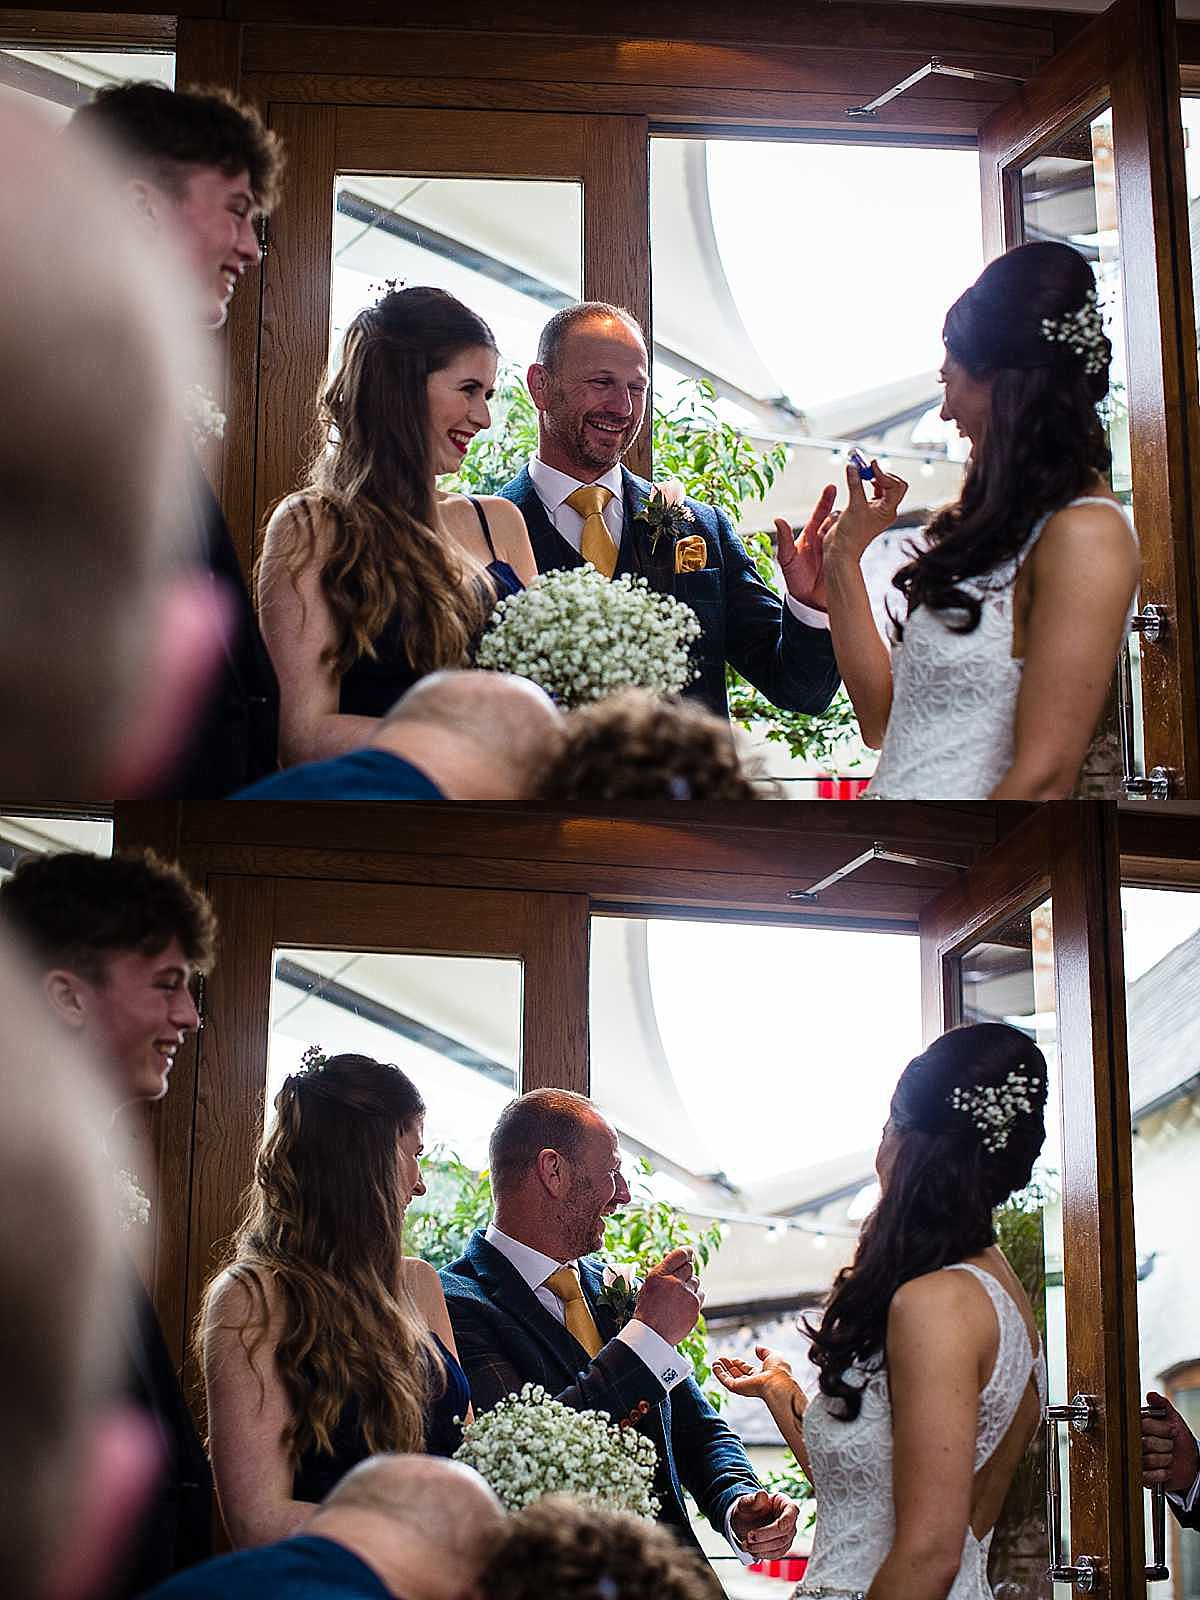 bride pulls lip balm out of her pocket of her wedding dress which makes the groom laugh and the groom goes to throw it as a joke